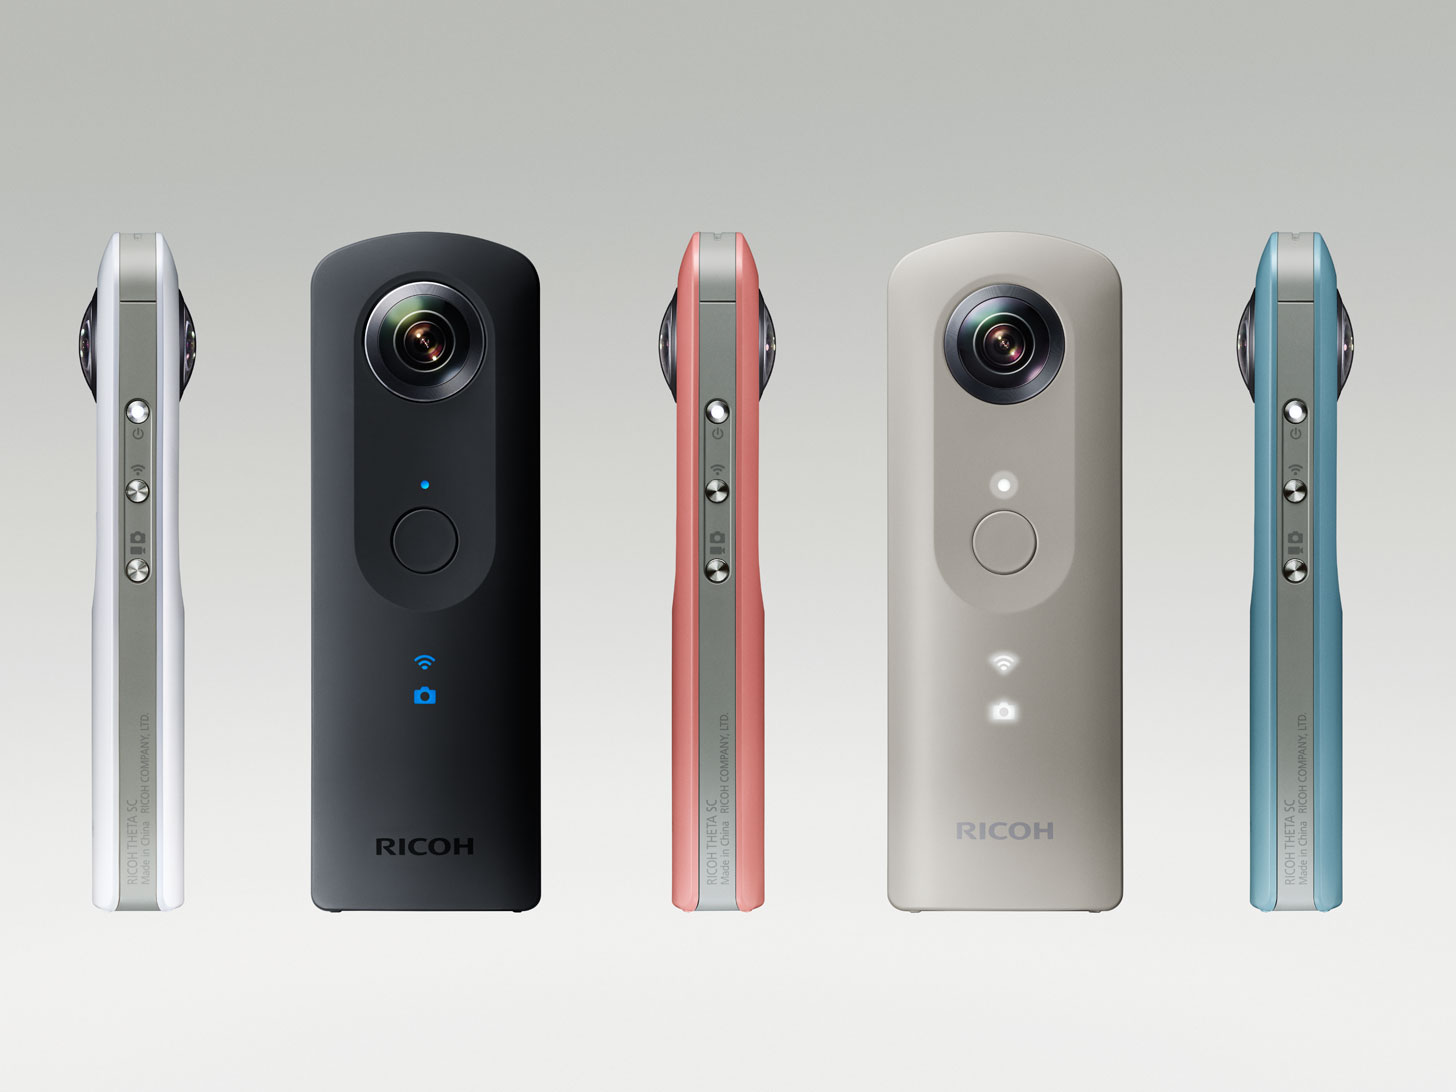 Ricoh Theta SC camera officially annoucned